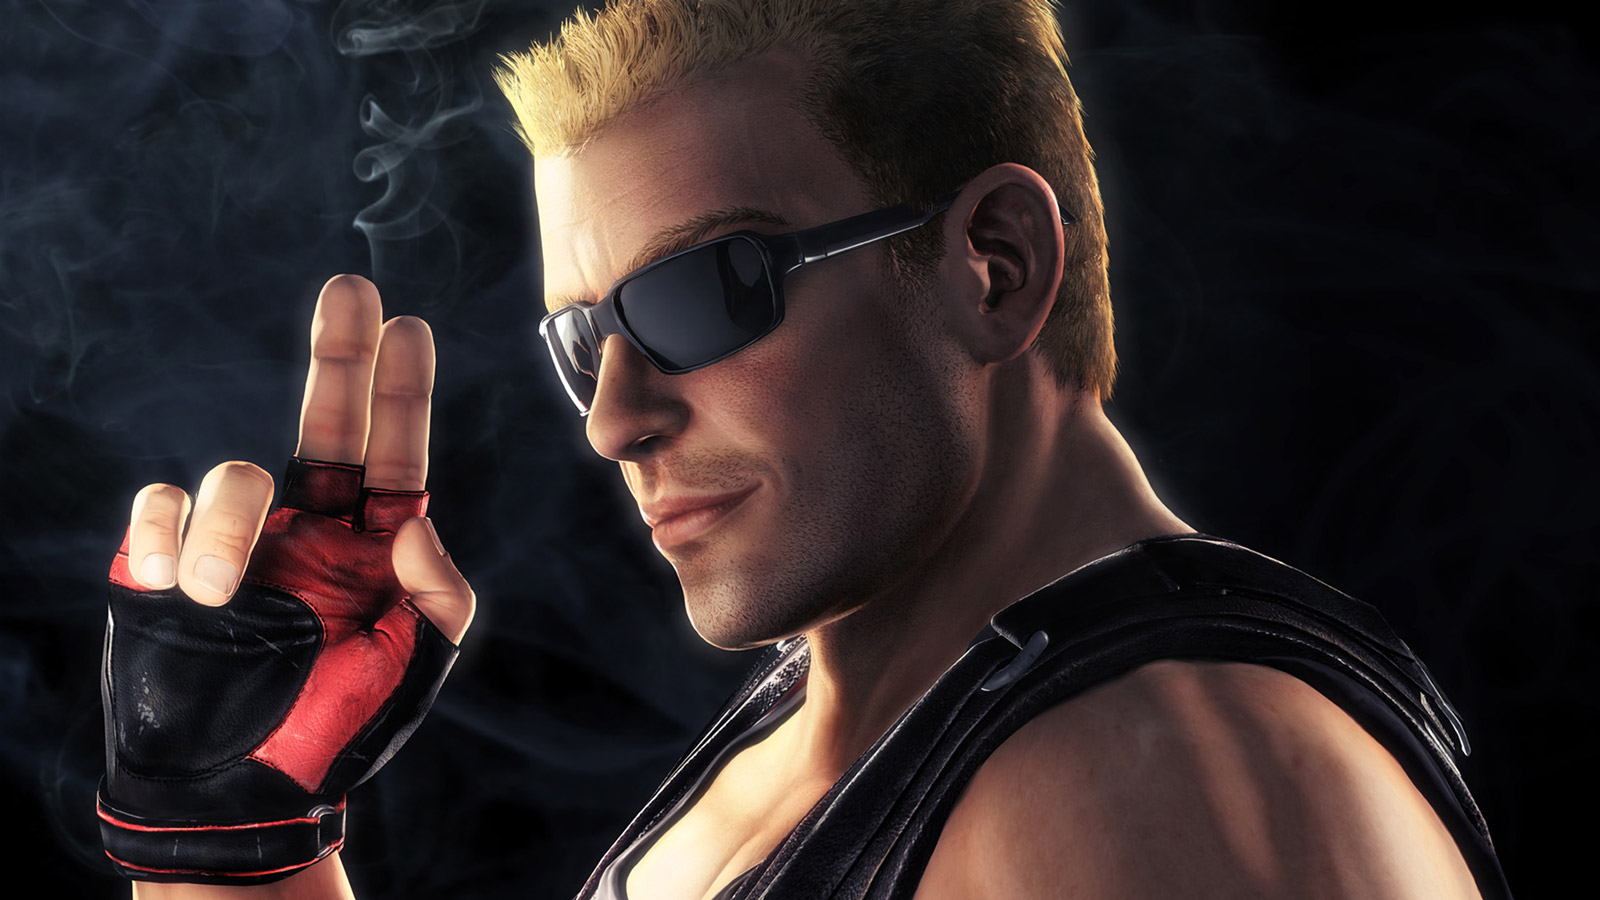 Duke Nukem Forever Wallpaper in 1600x900